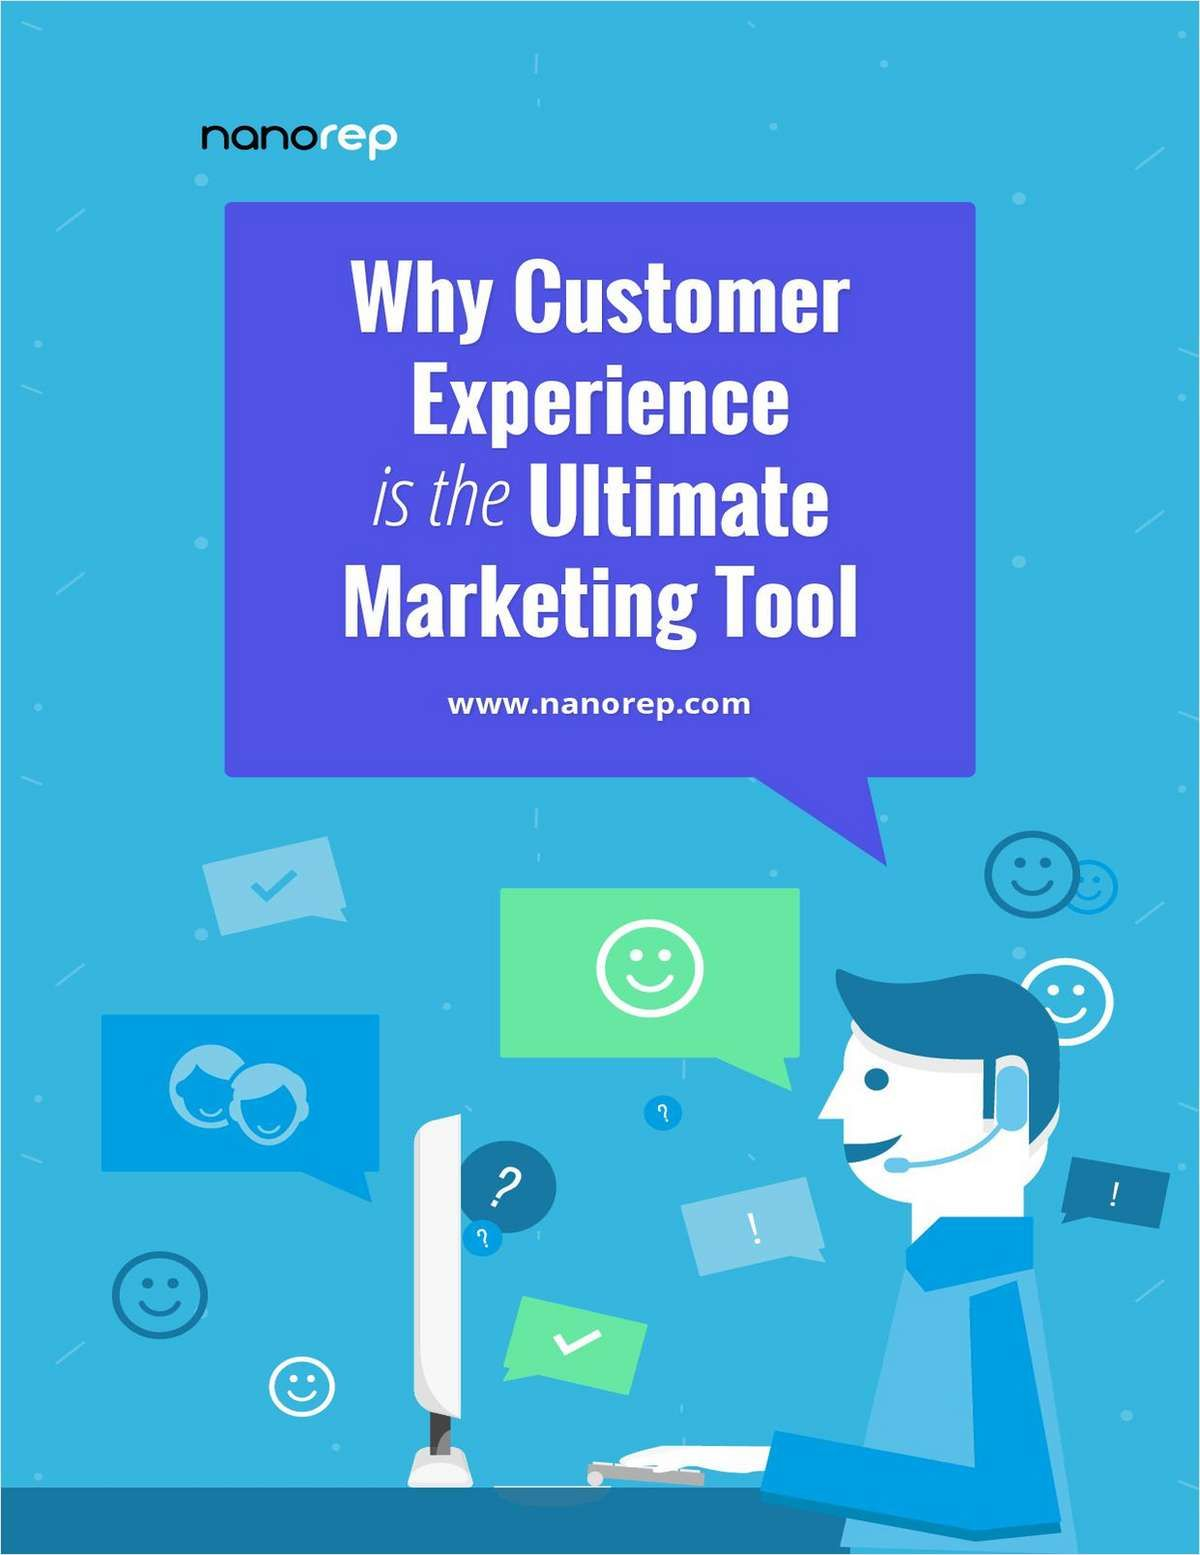 Why Customer Experience is the Ultimate Marketing Tool - posted by EmailWire Press Release Distribution Services